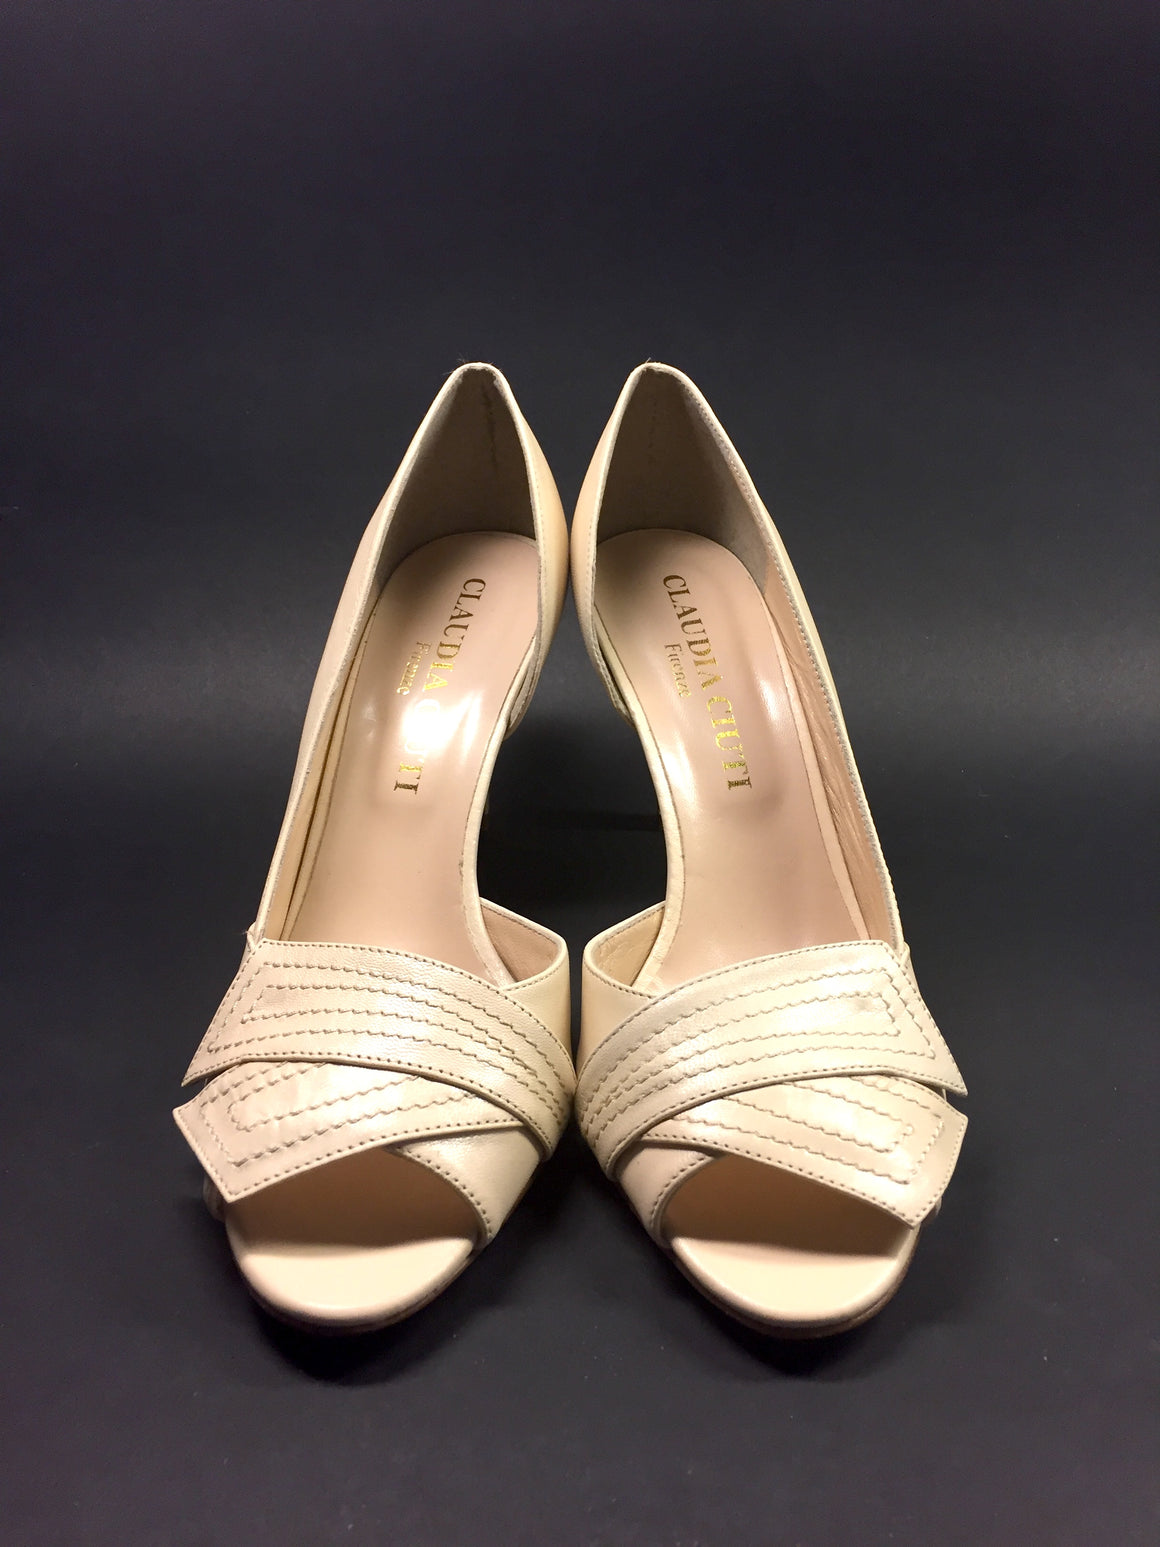 CLAUDIA CIUTTI Beige Leather Open-Toe Bow Heel Pumps Sz9